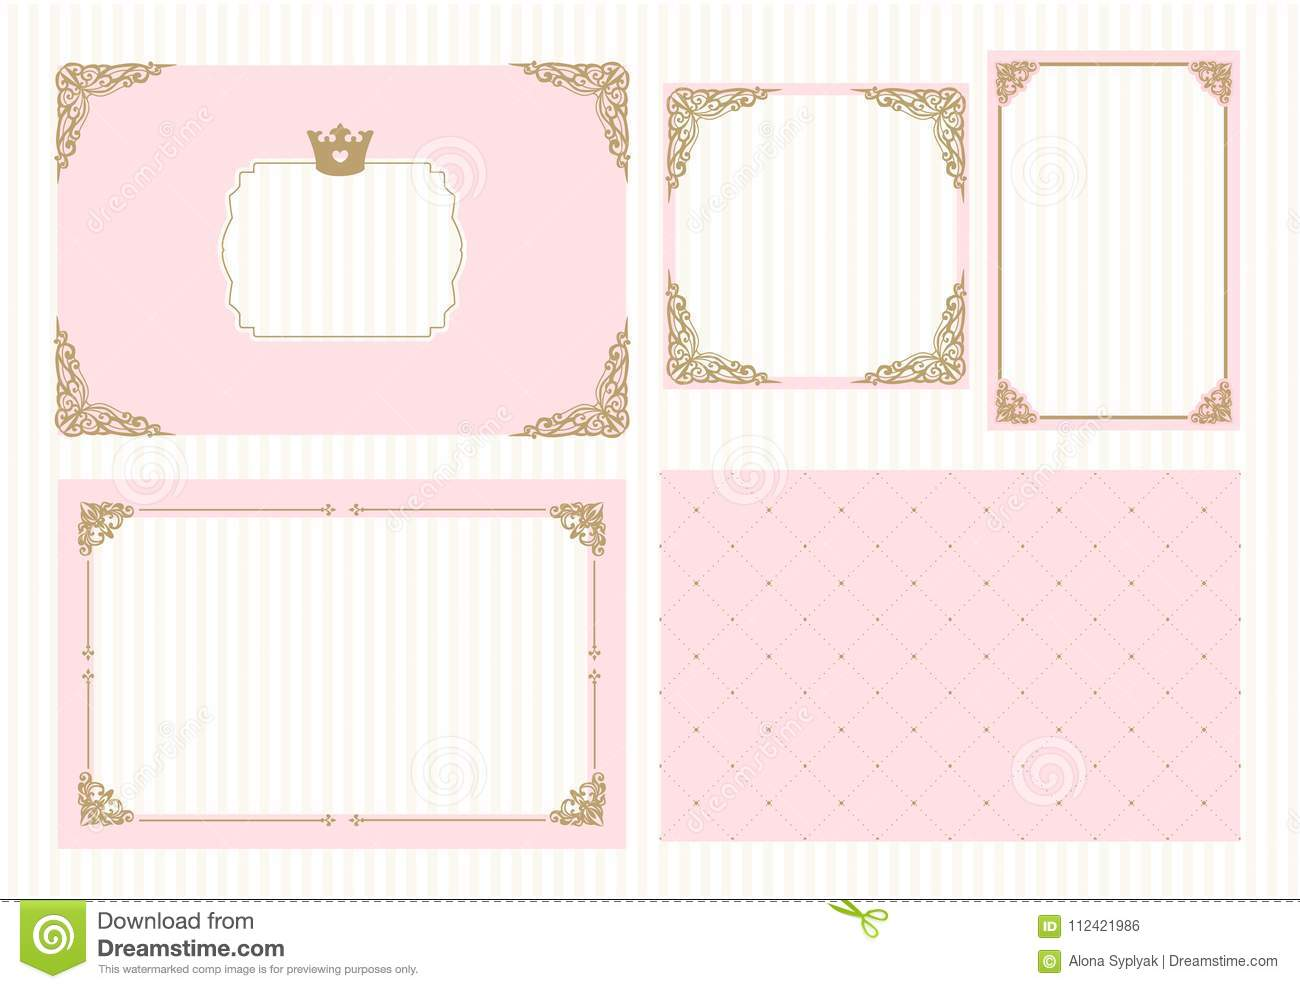 https www dreamstime com baby shower wedding girl birthday invite card cute picture border decorative golden corner set cute pink templates image112421986